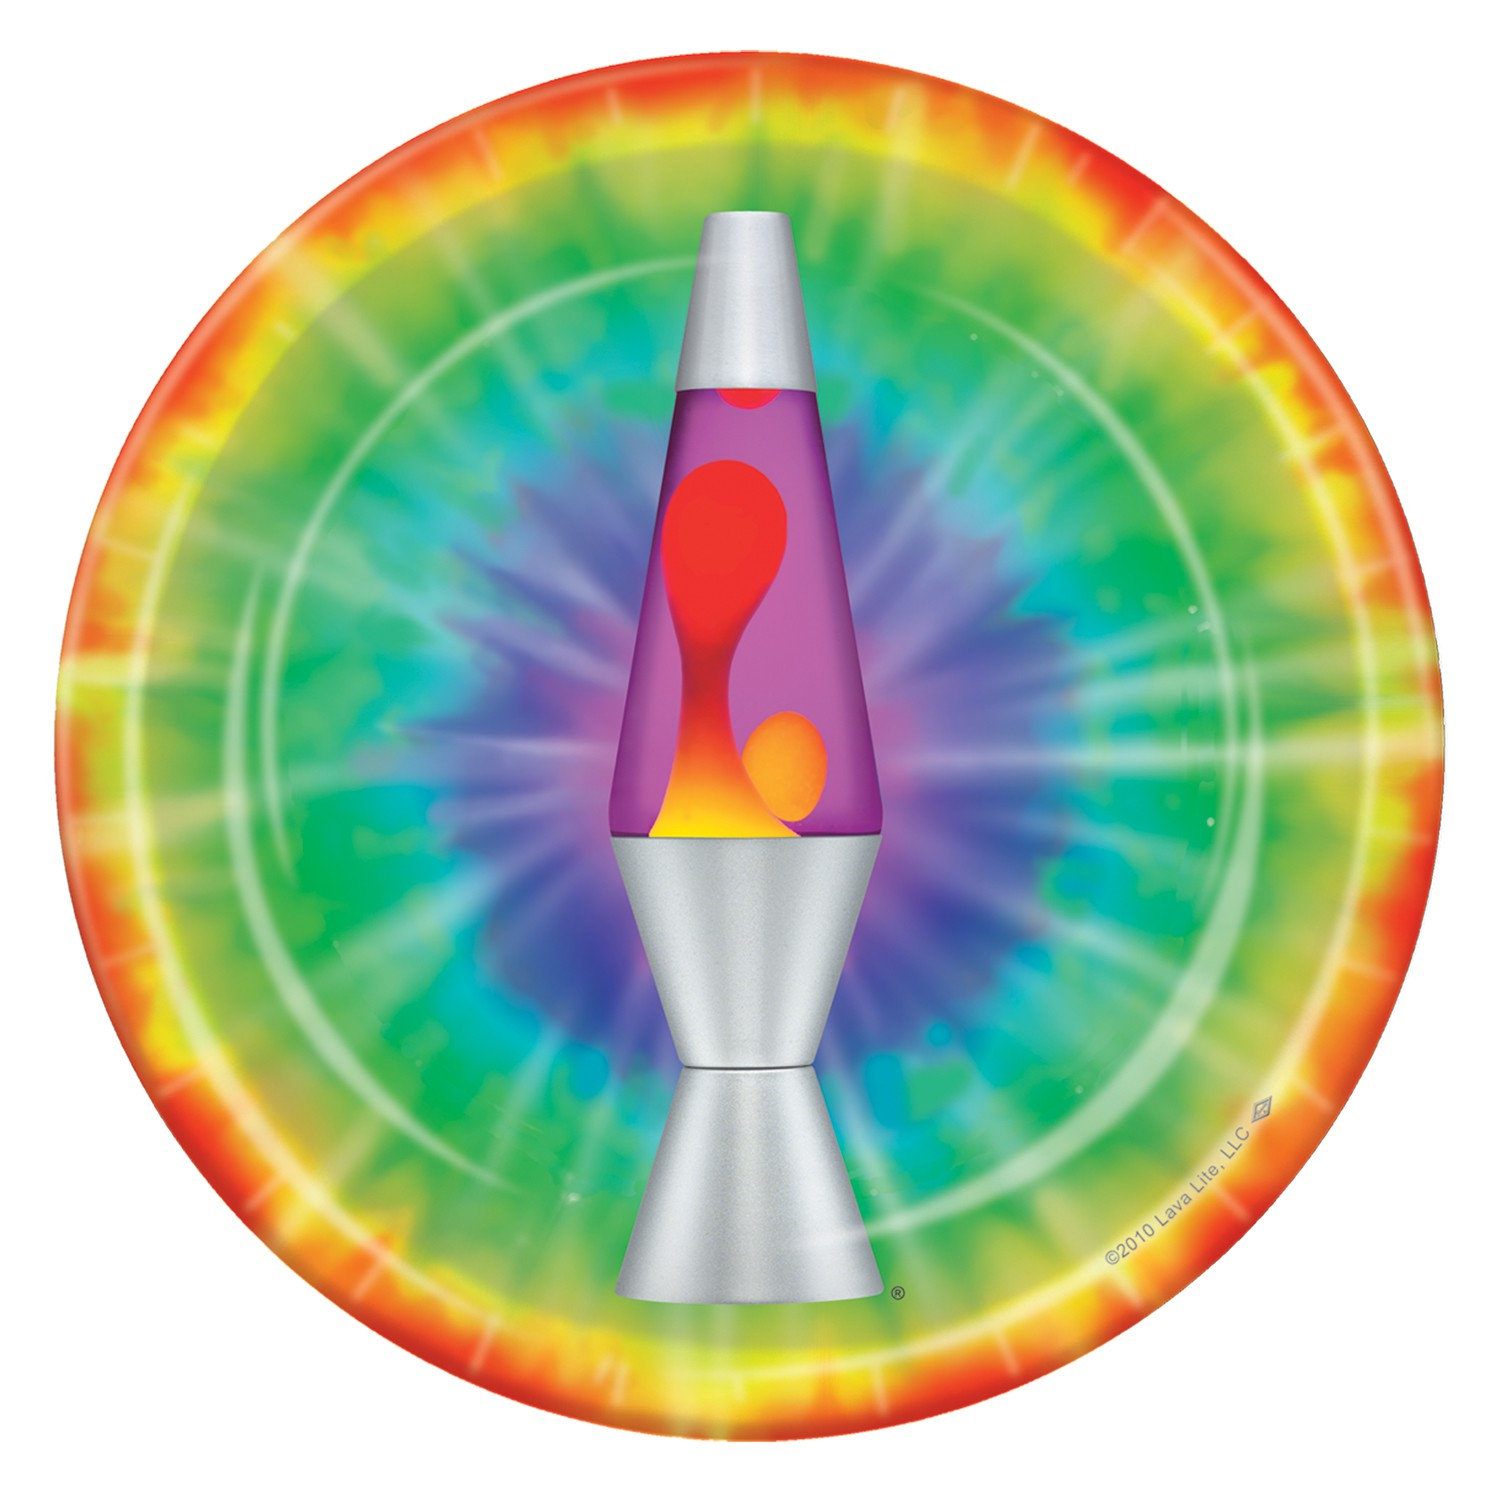 1500x1500 Lava Lamp Clip Art All About Lava Lamps Perfect Tool For Relaxation.